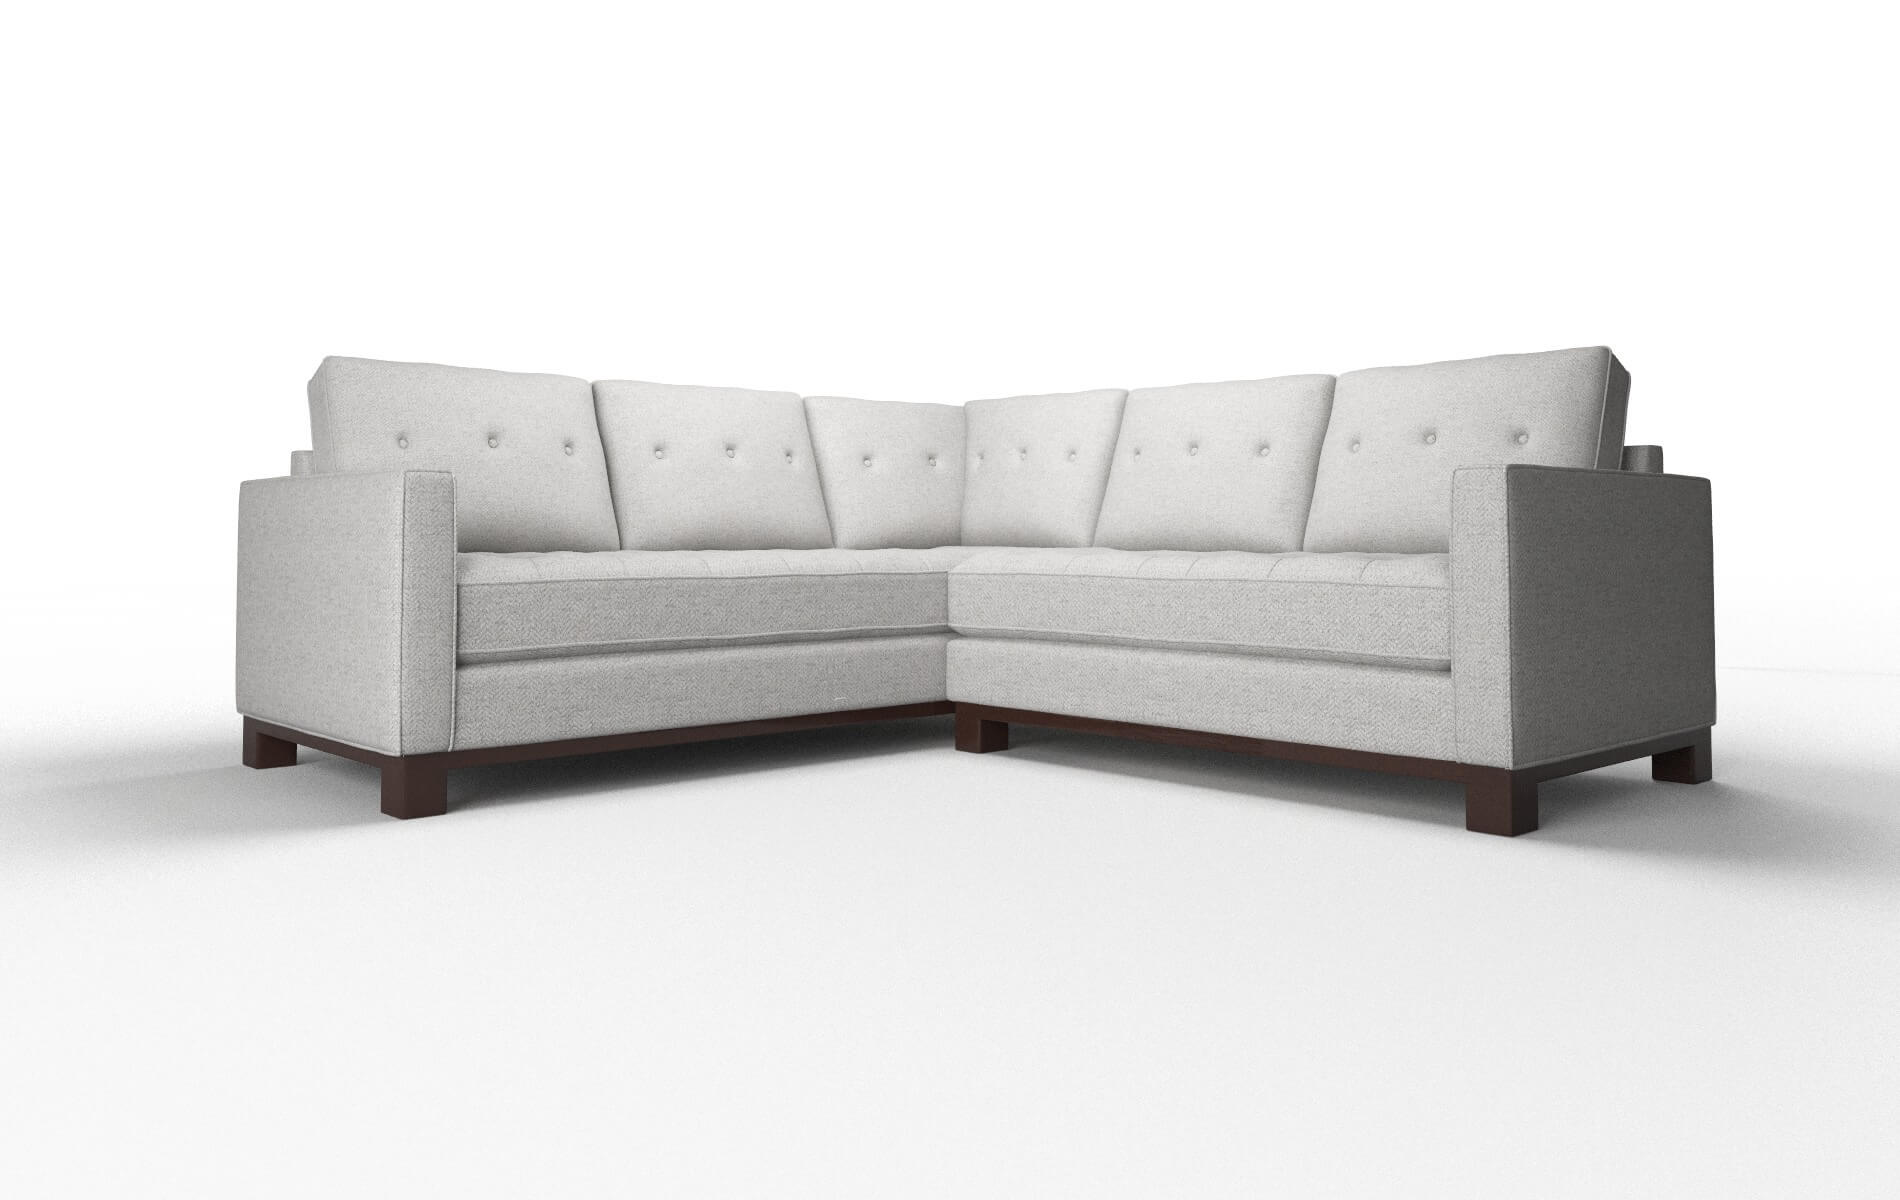 Syros Catalina Silver Sectional espresso legs 1